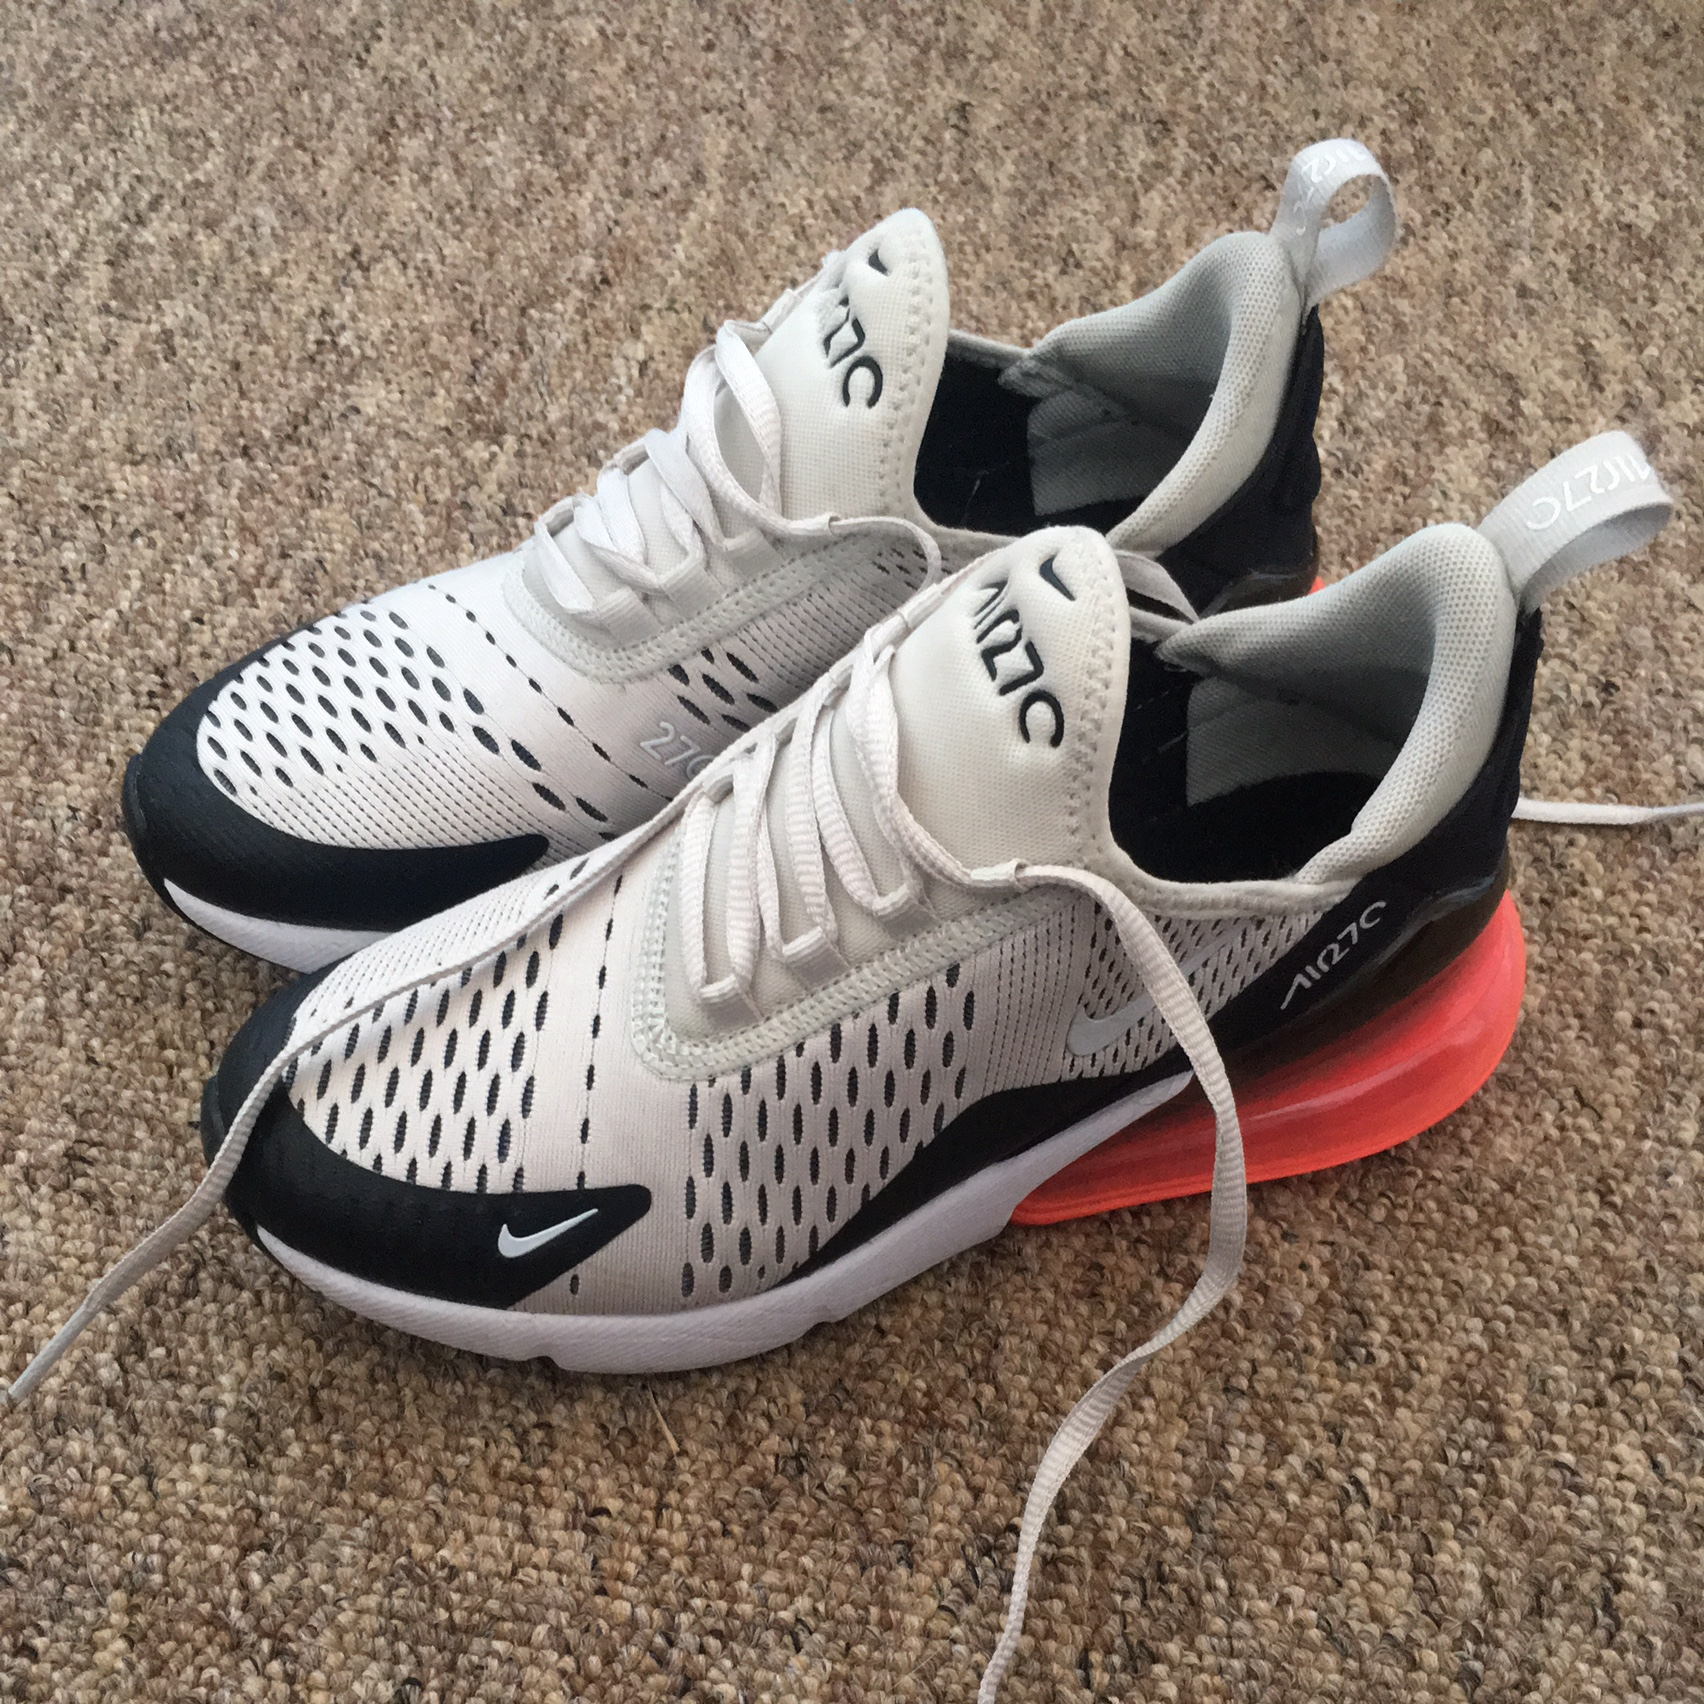 Nike Air Max 270 In Beige With Pink Bubble Bought Depop